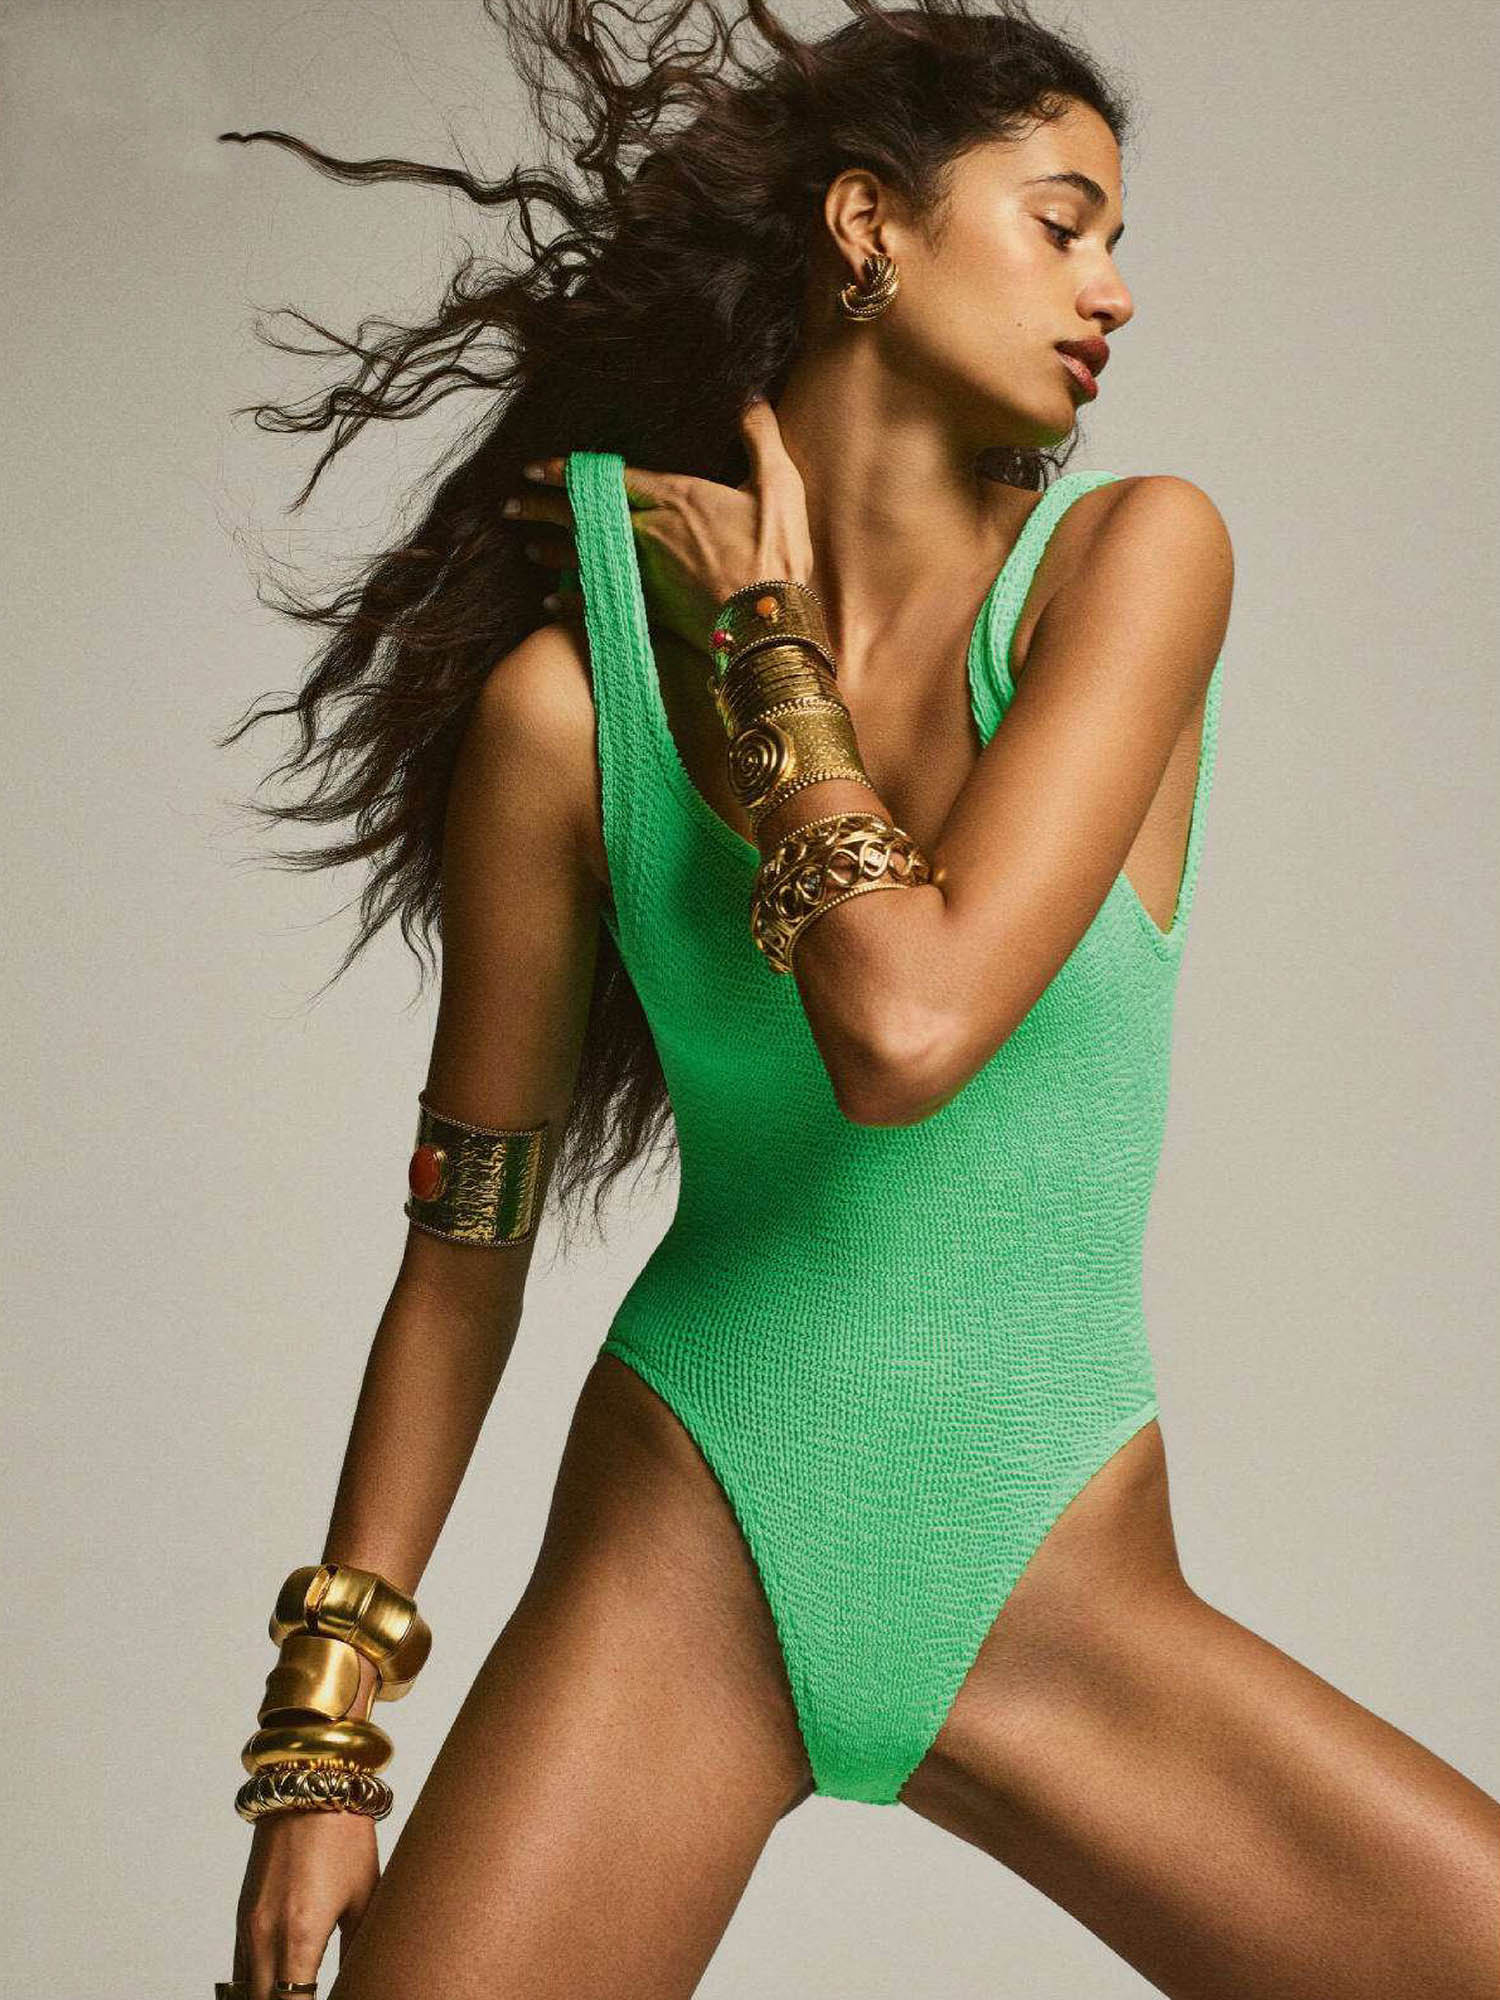 Malika El Maslouhi by Gregory Harris for Vogue Paris April 2021